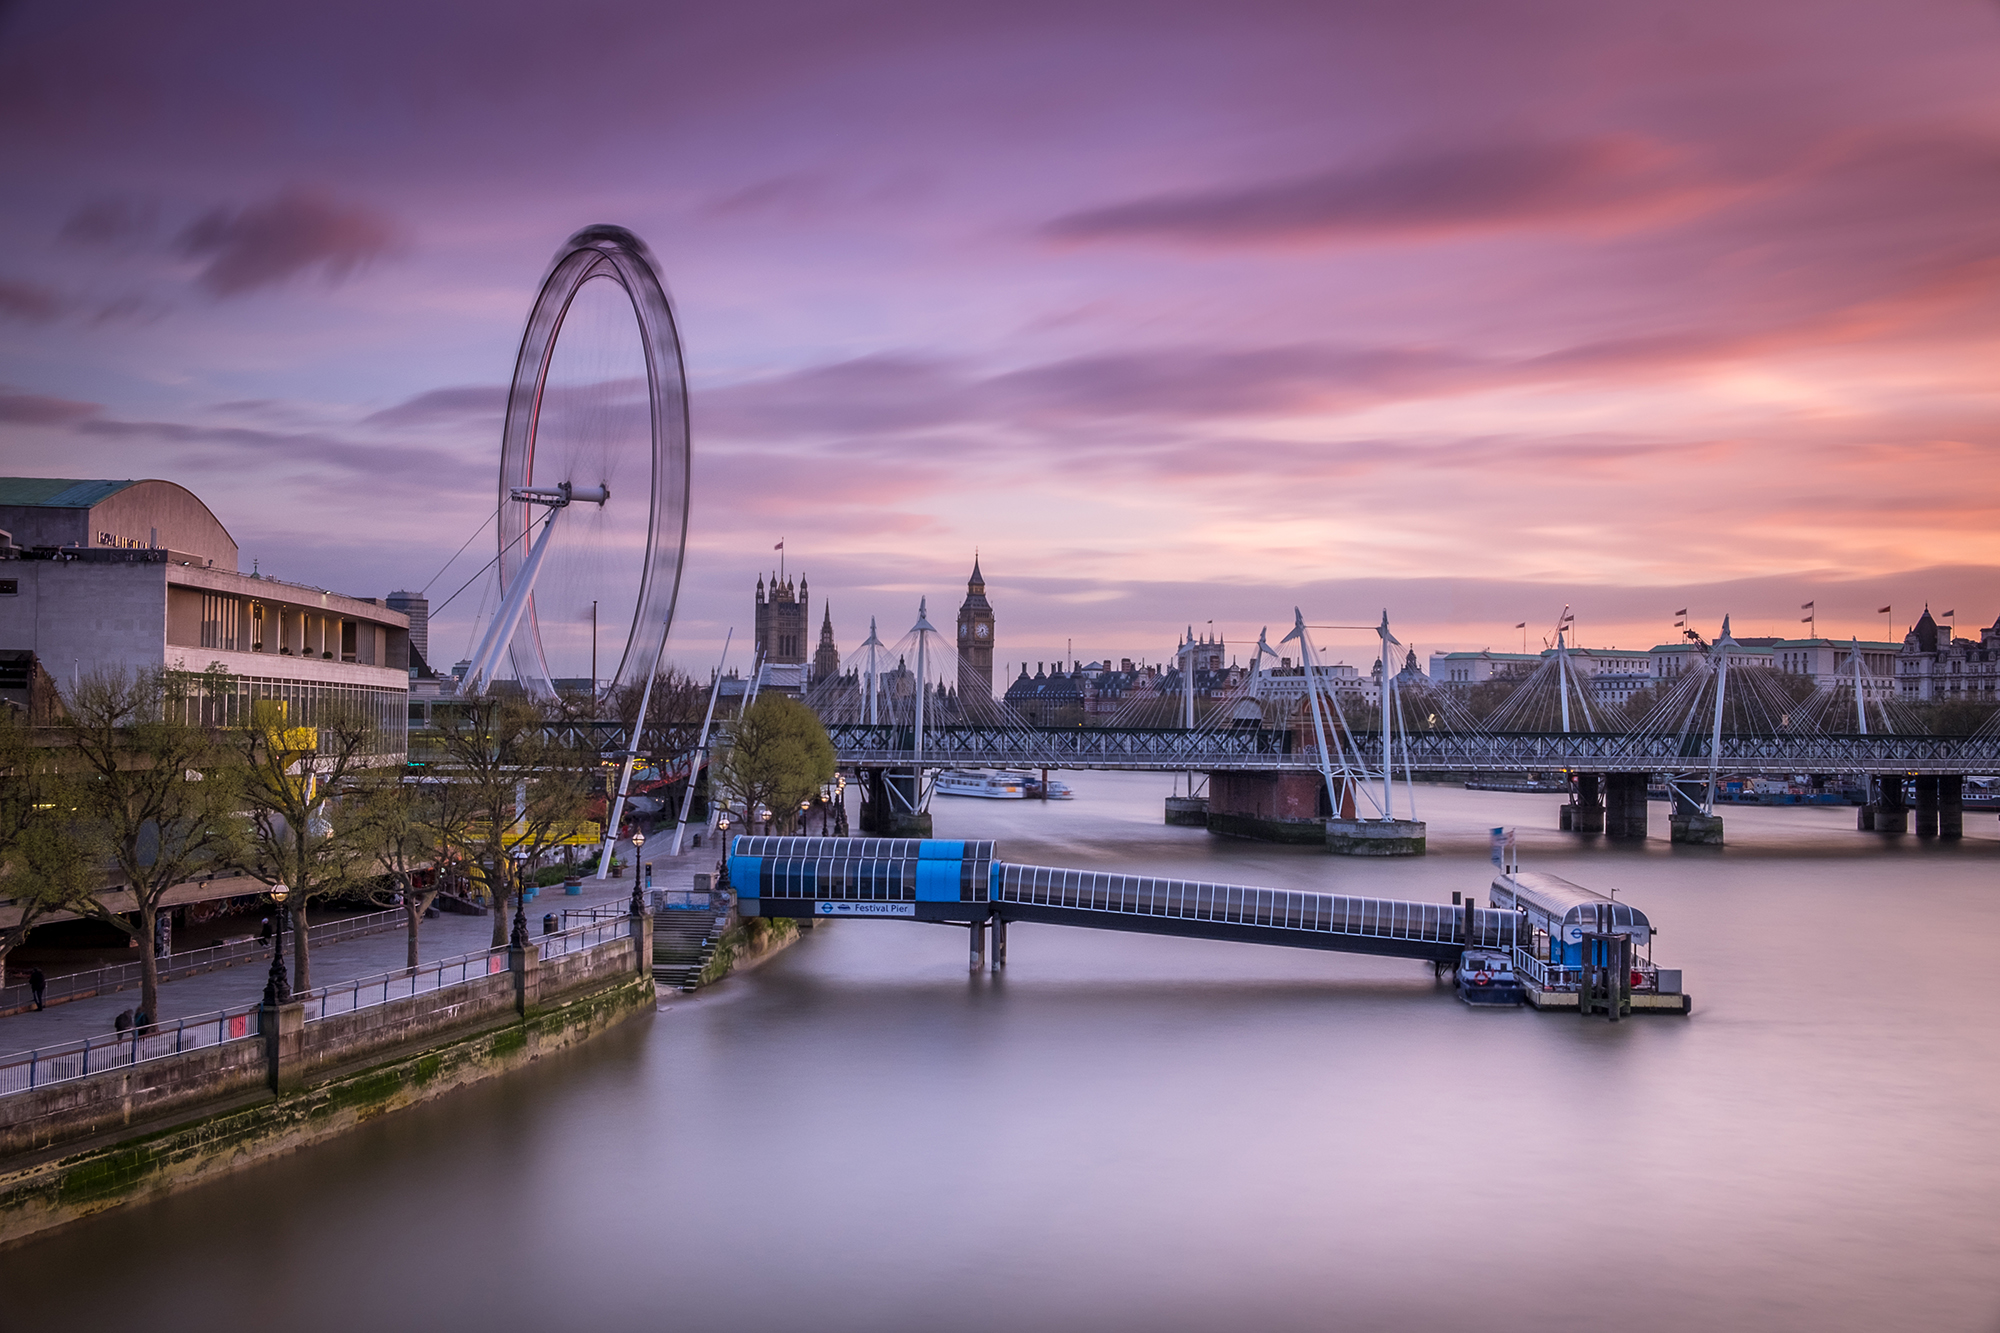 Cityscape long exposure photo of the South Bank and the London Eye, London by Trevor Sherwin